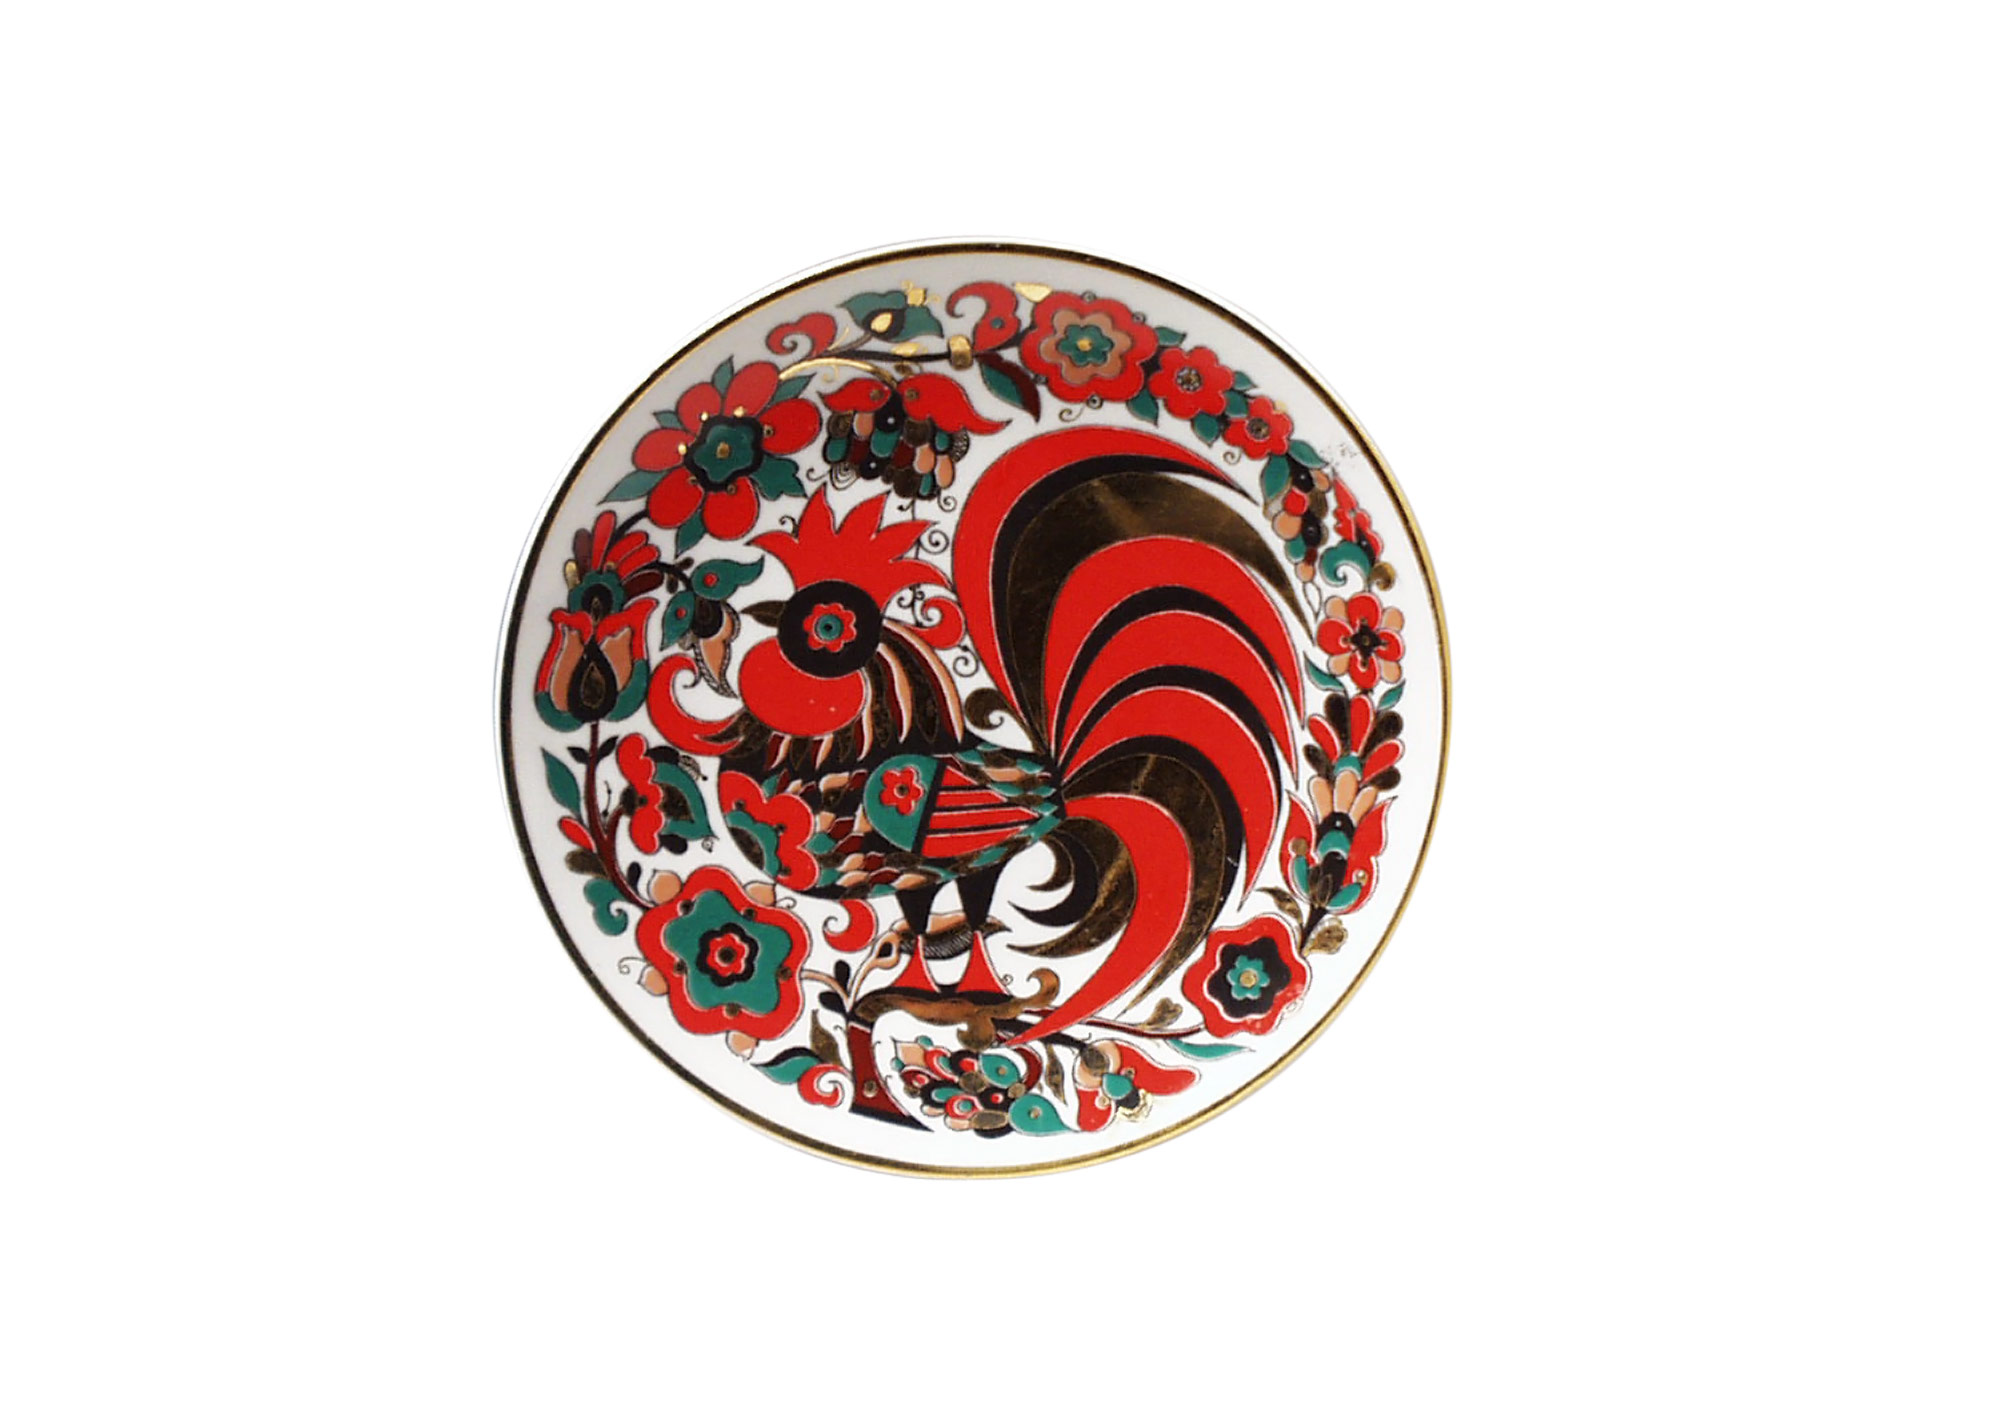 Red rooster decorative plate 8 porcelain plates for Decoration plates